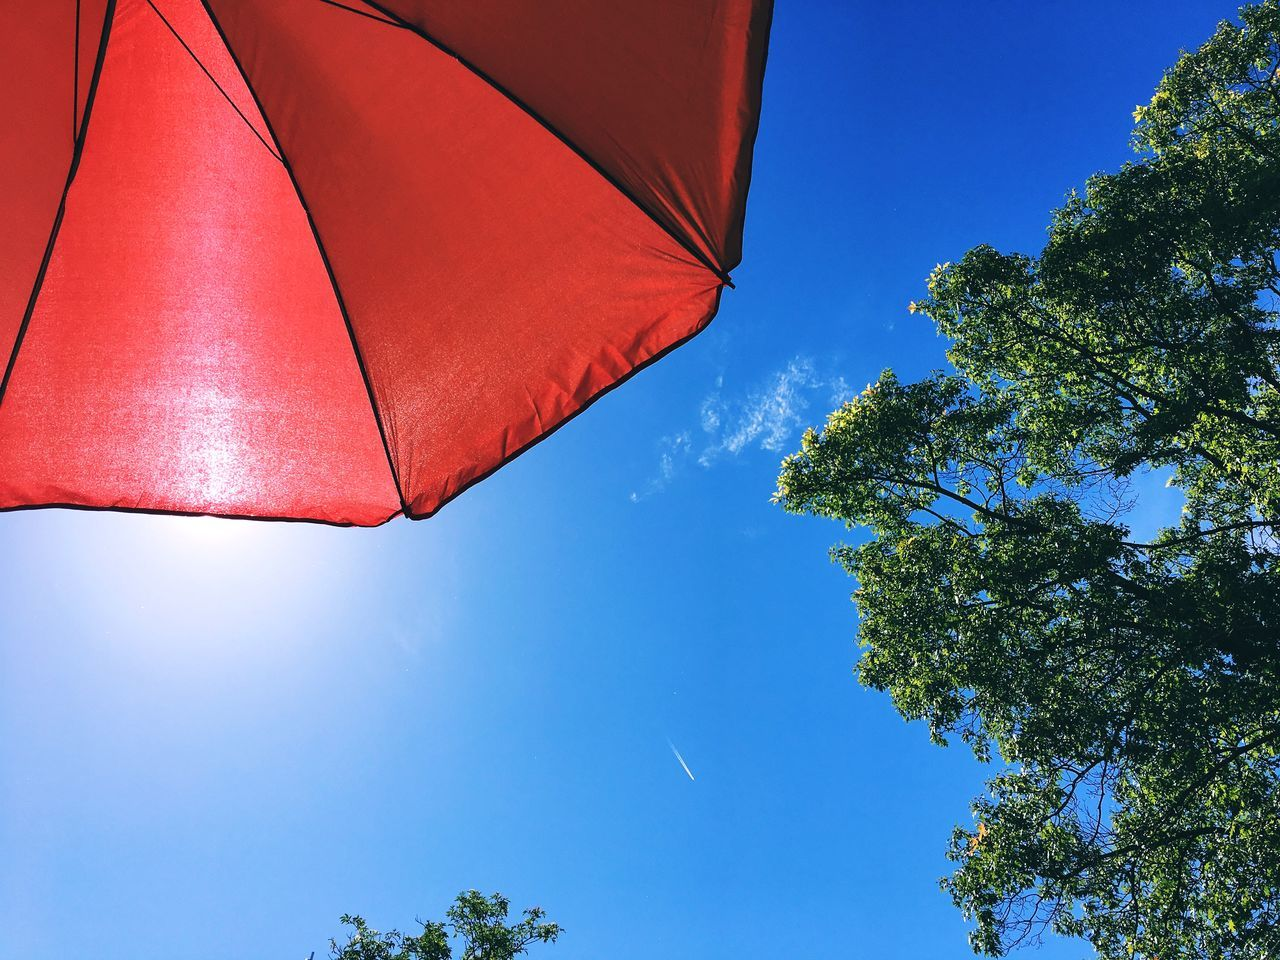 Low Angle View Of Parasol Against Clear Sky Back Lit Beach Umbrella Beauty In Nature Blue Clear Sky Close-up Color Image Copy Space Day Horizontal Low Angle View Nature No People Outdoors Parasol Photography Protection Red Single Object Sky Summer Sunlight Sunshade Tree